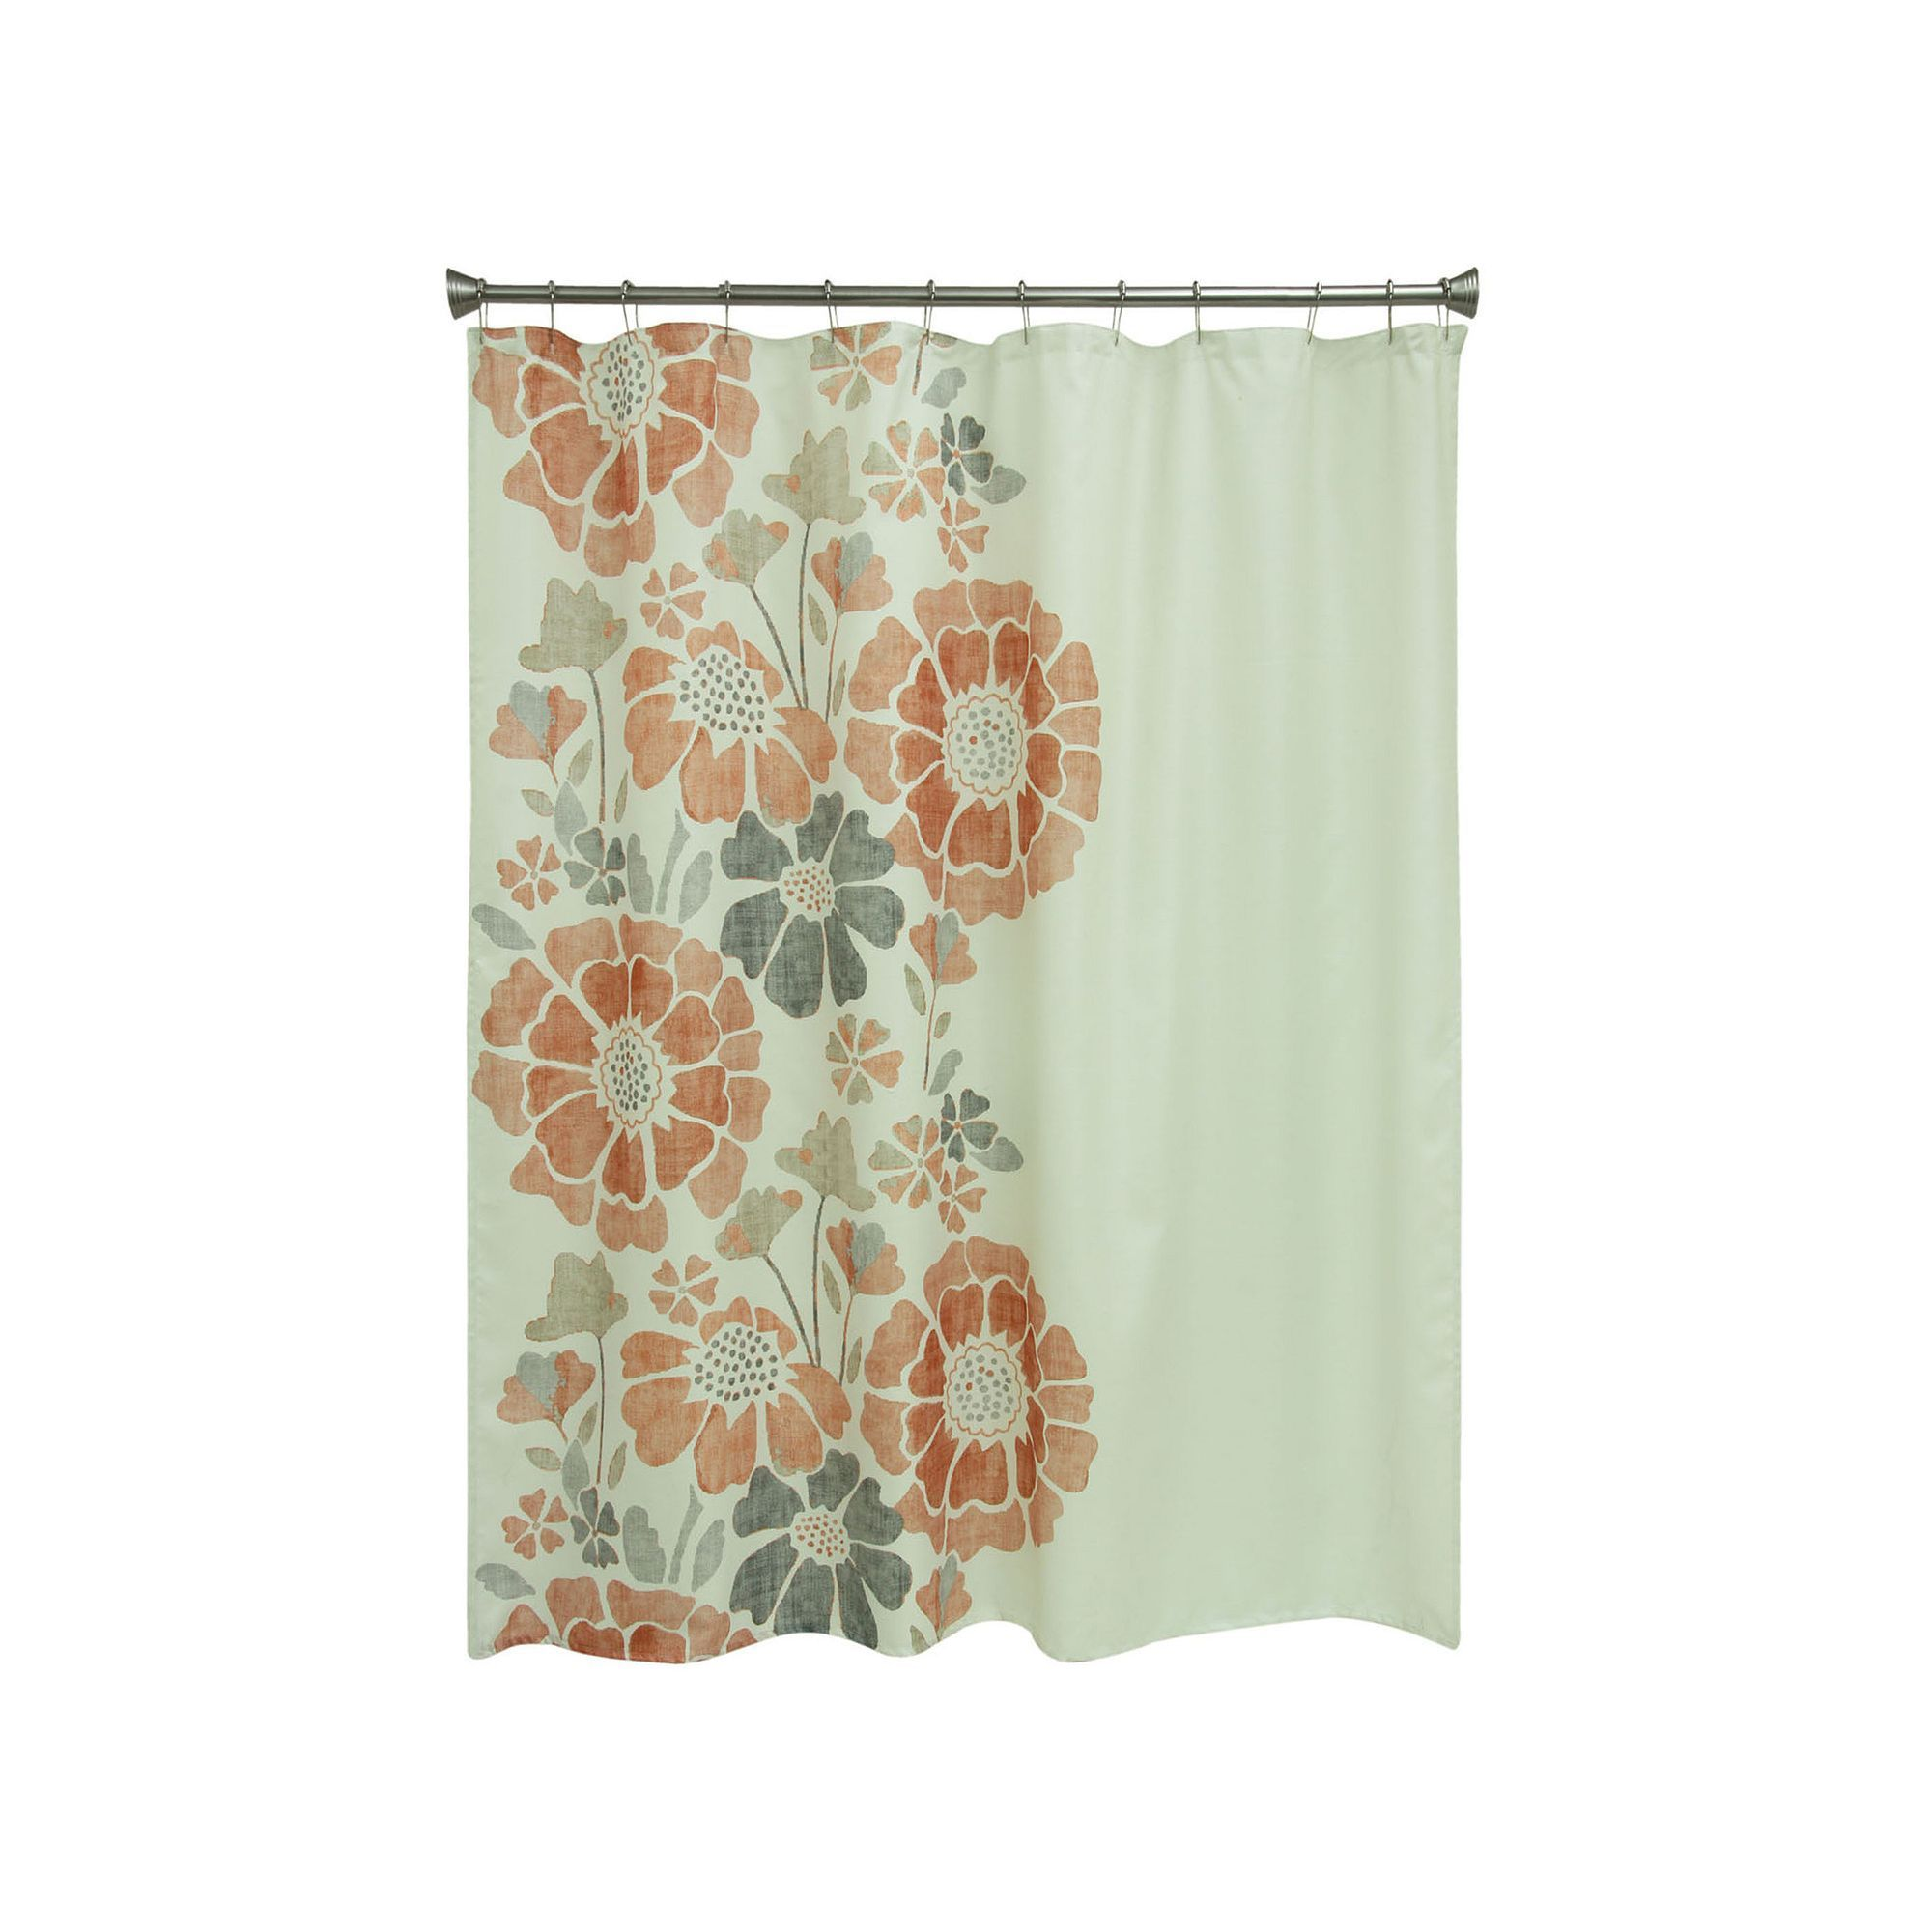 Jazz Up Your Bathroom Decor With This Bacova Peyton Floral Shower Curtain